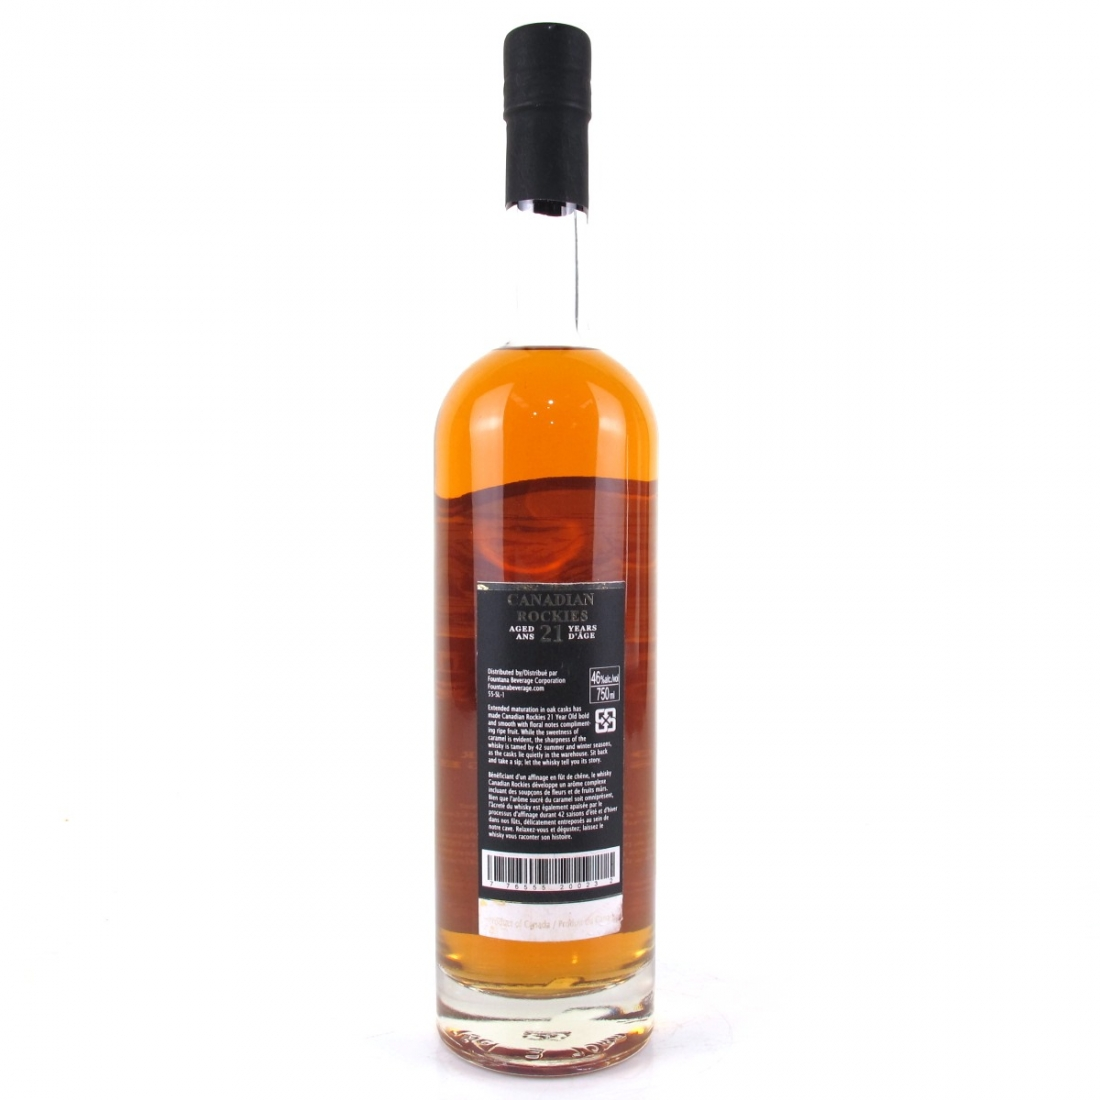 Canadian Rockies 21 Year Old 75cl